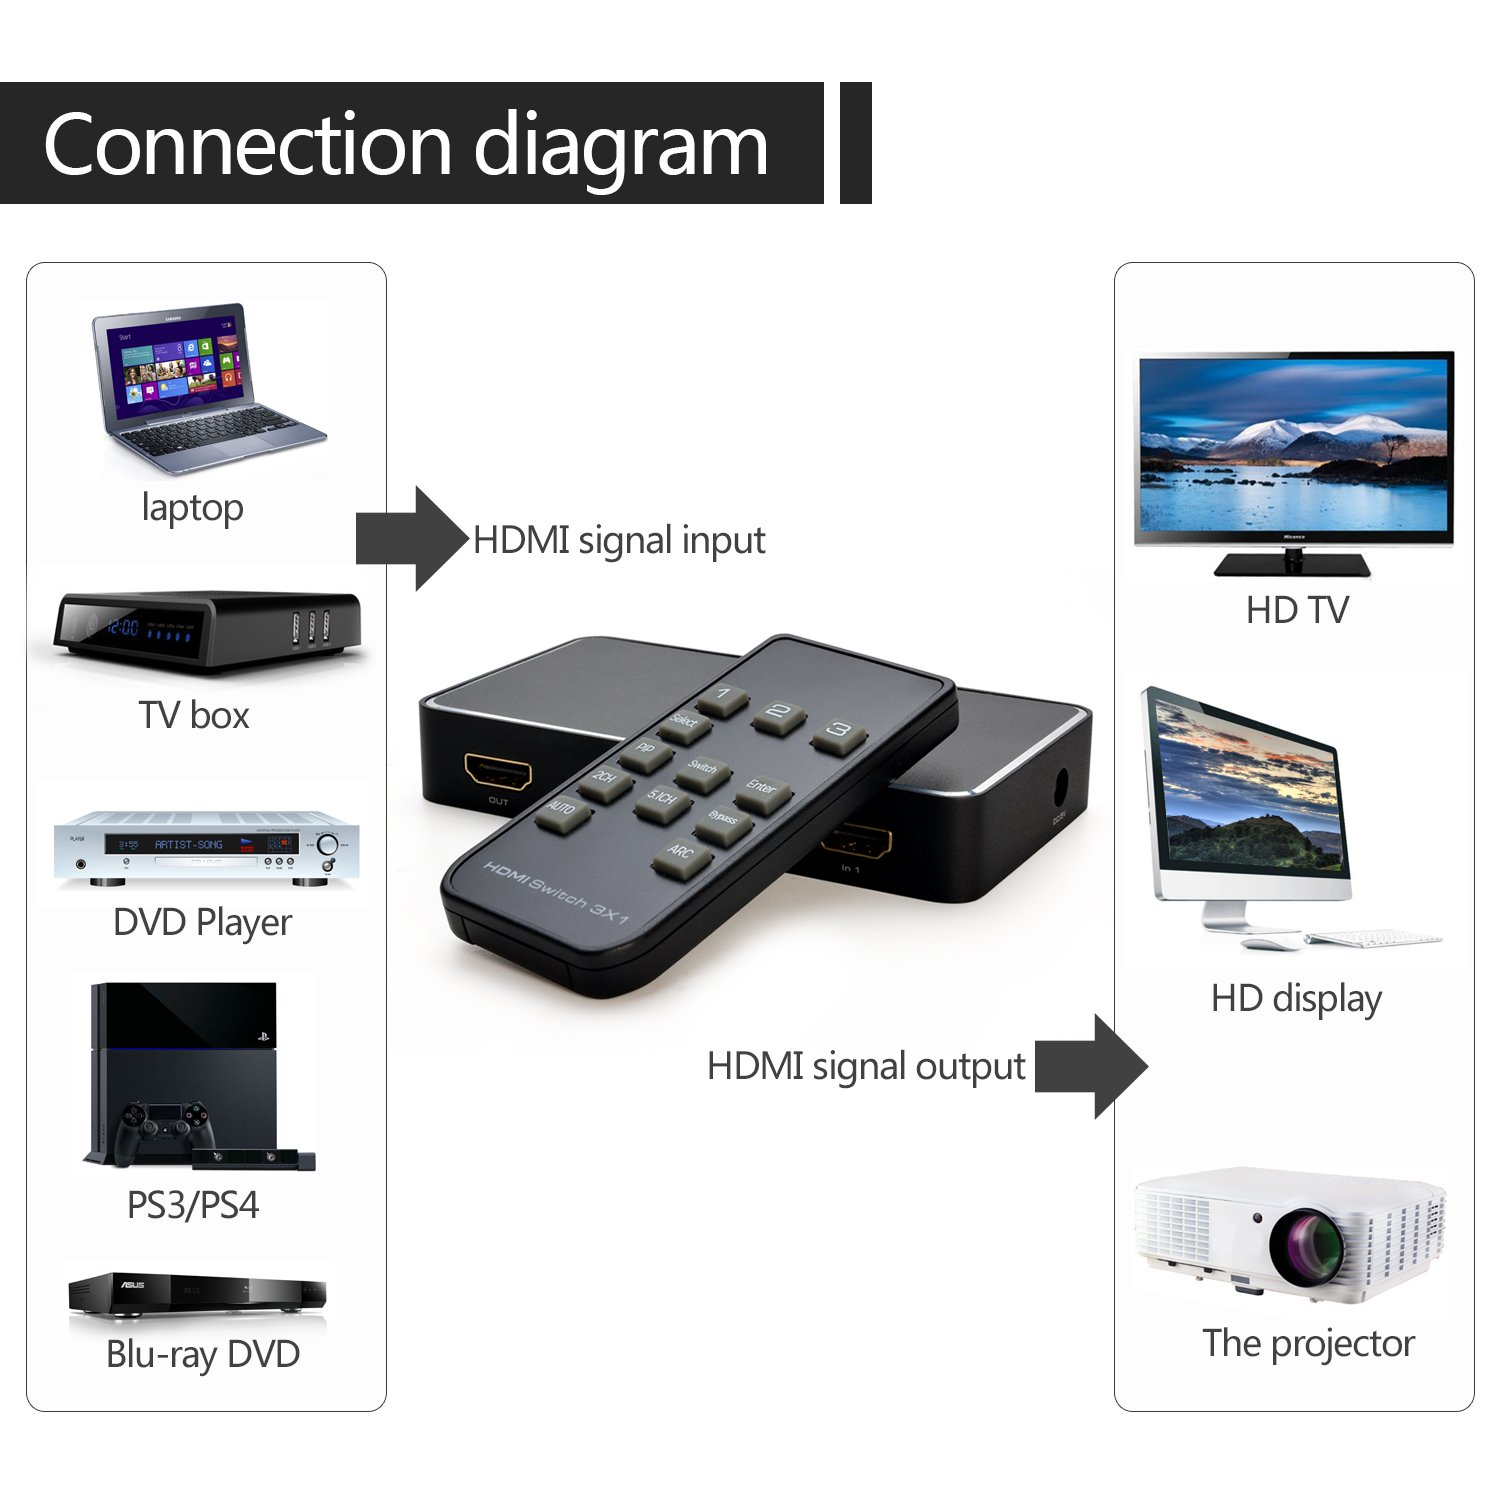 Hookup Diagram For Pip With Two Digital Channels